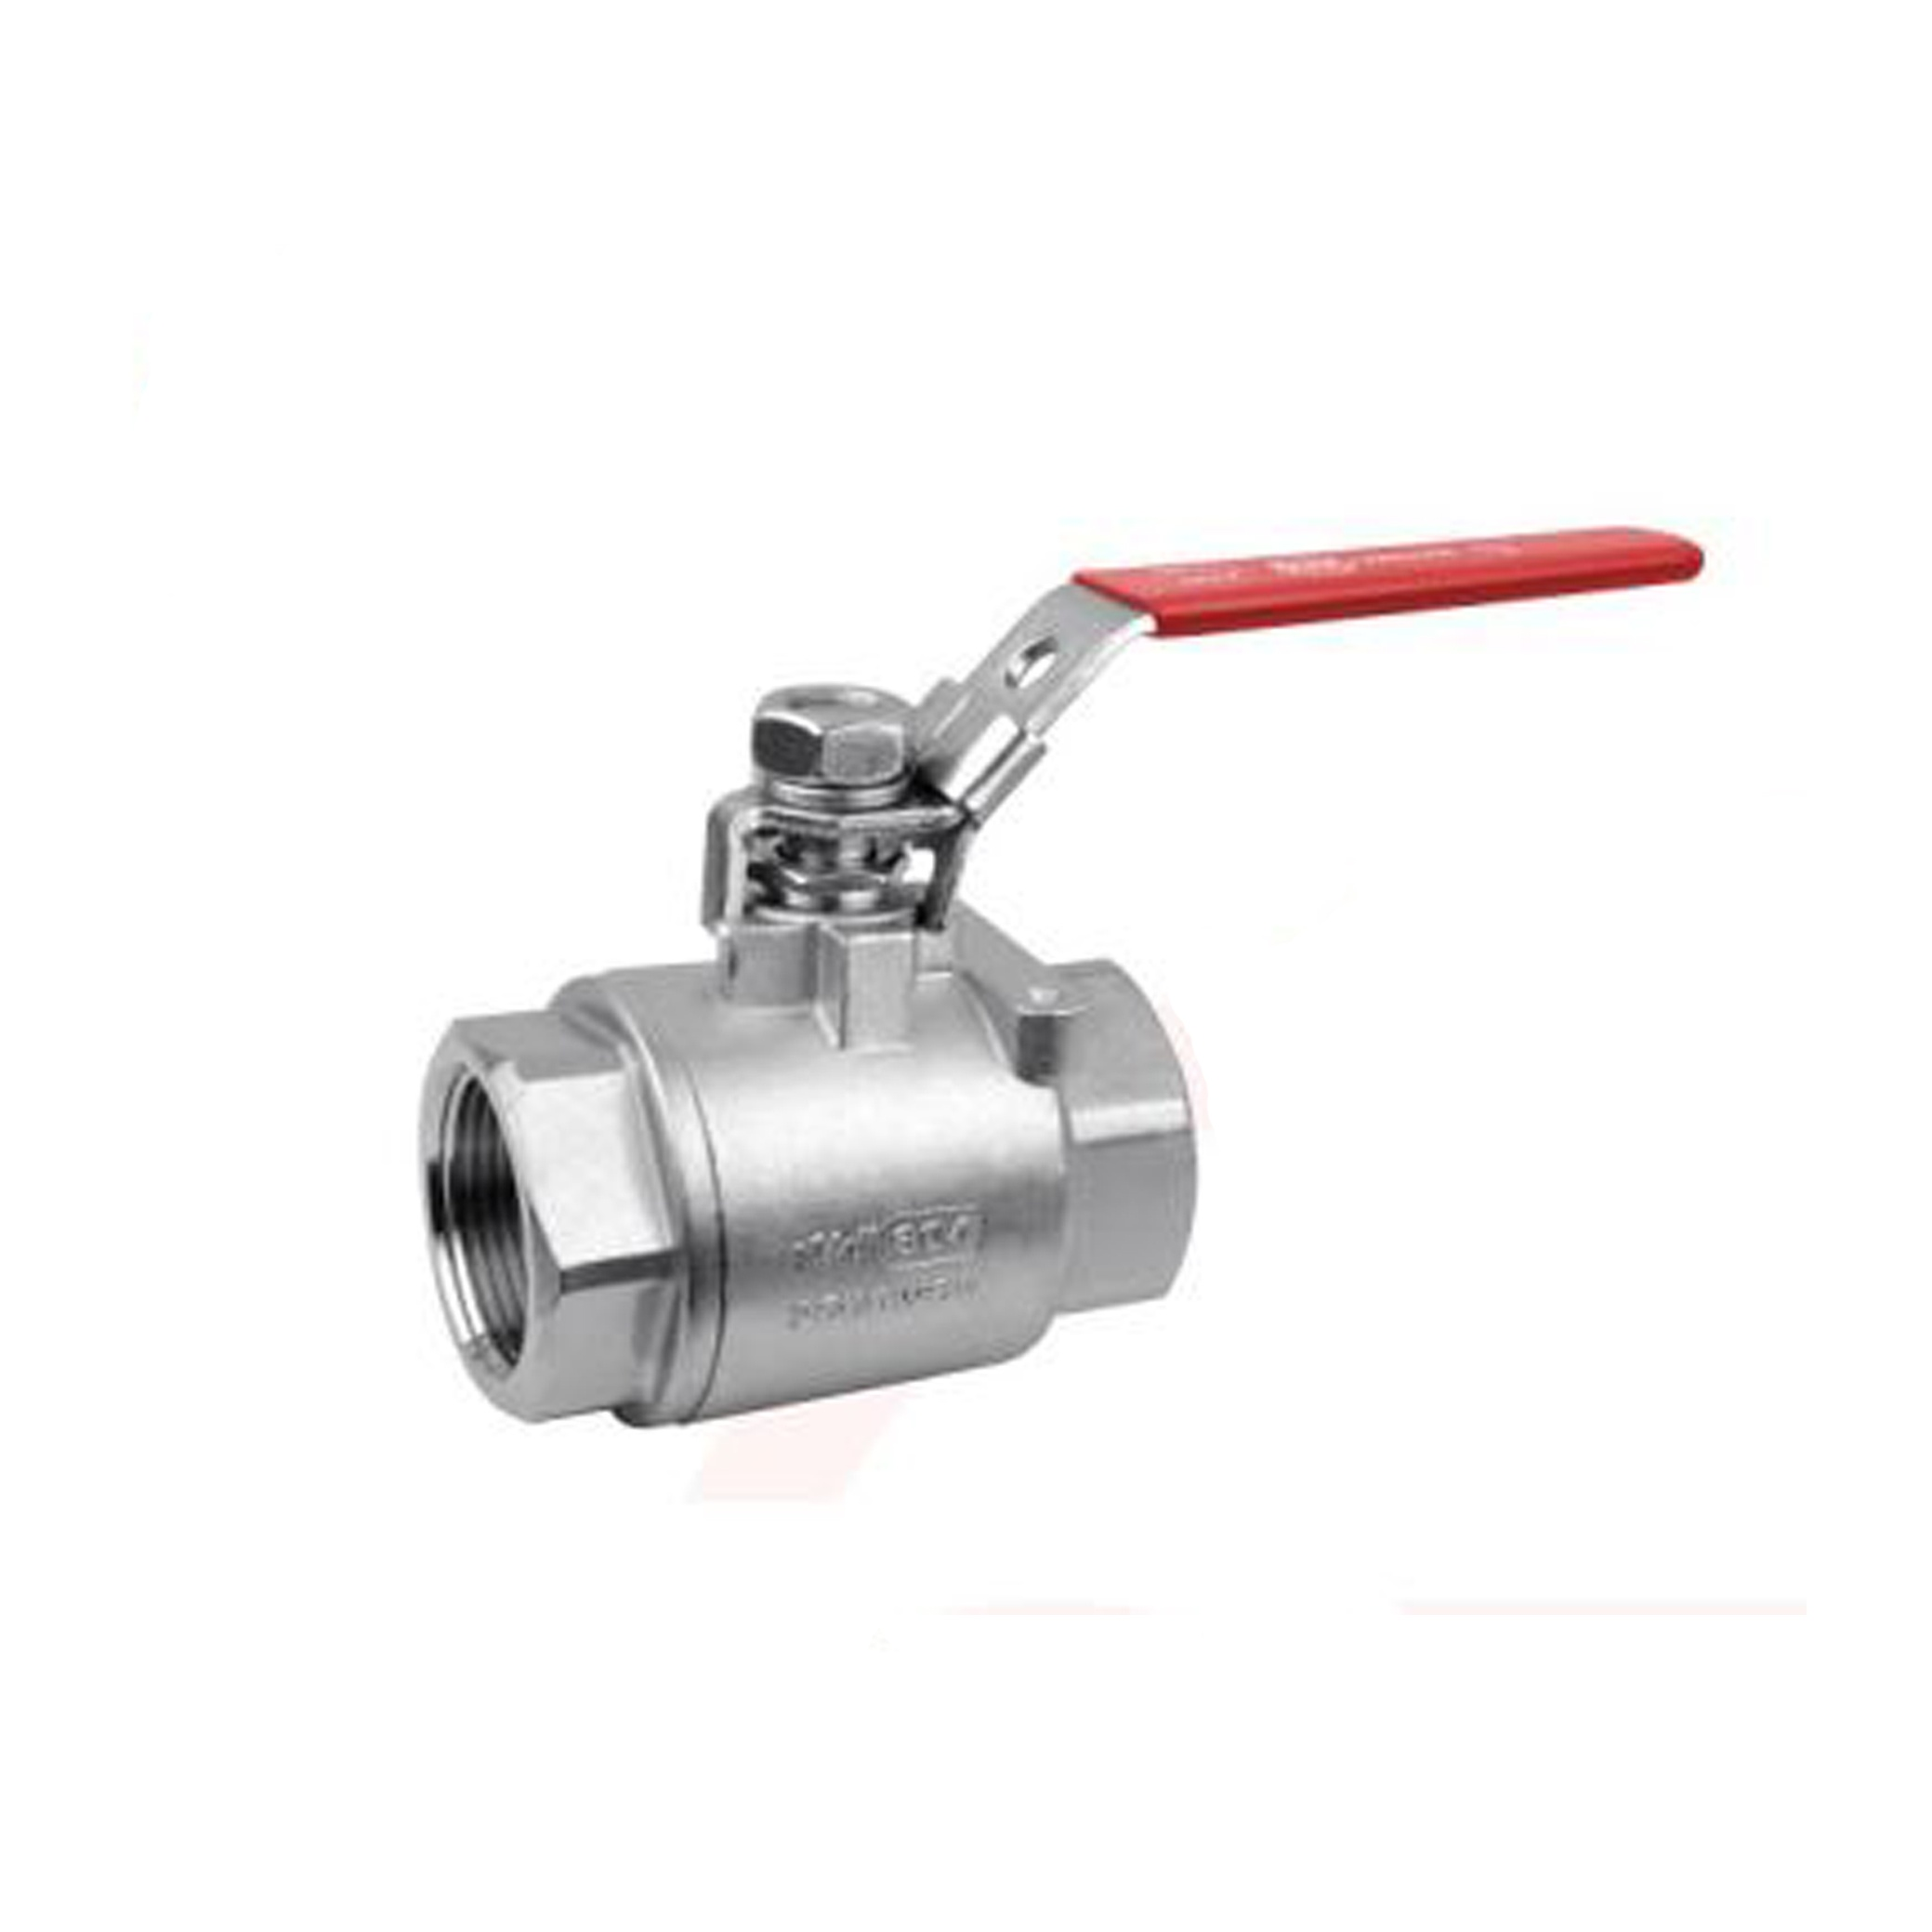 MZC Stainless Full Port Ball Valve 2000 WOG